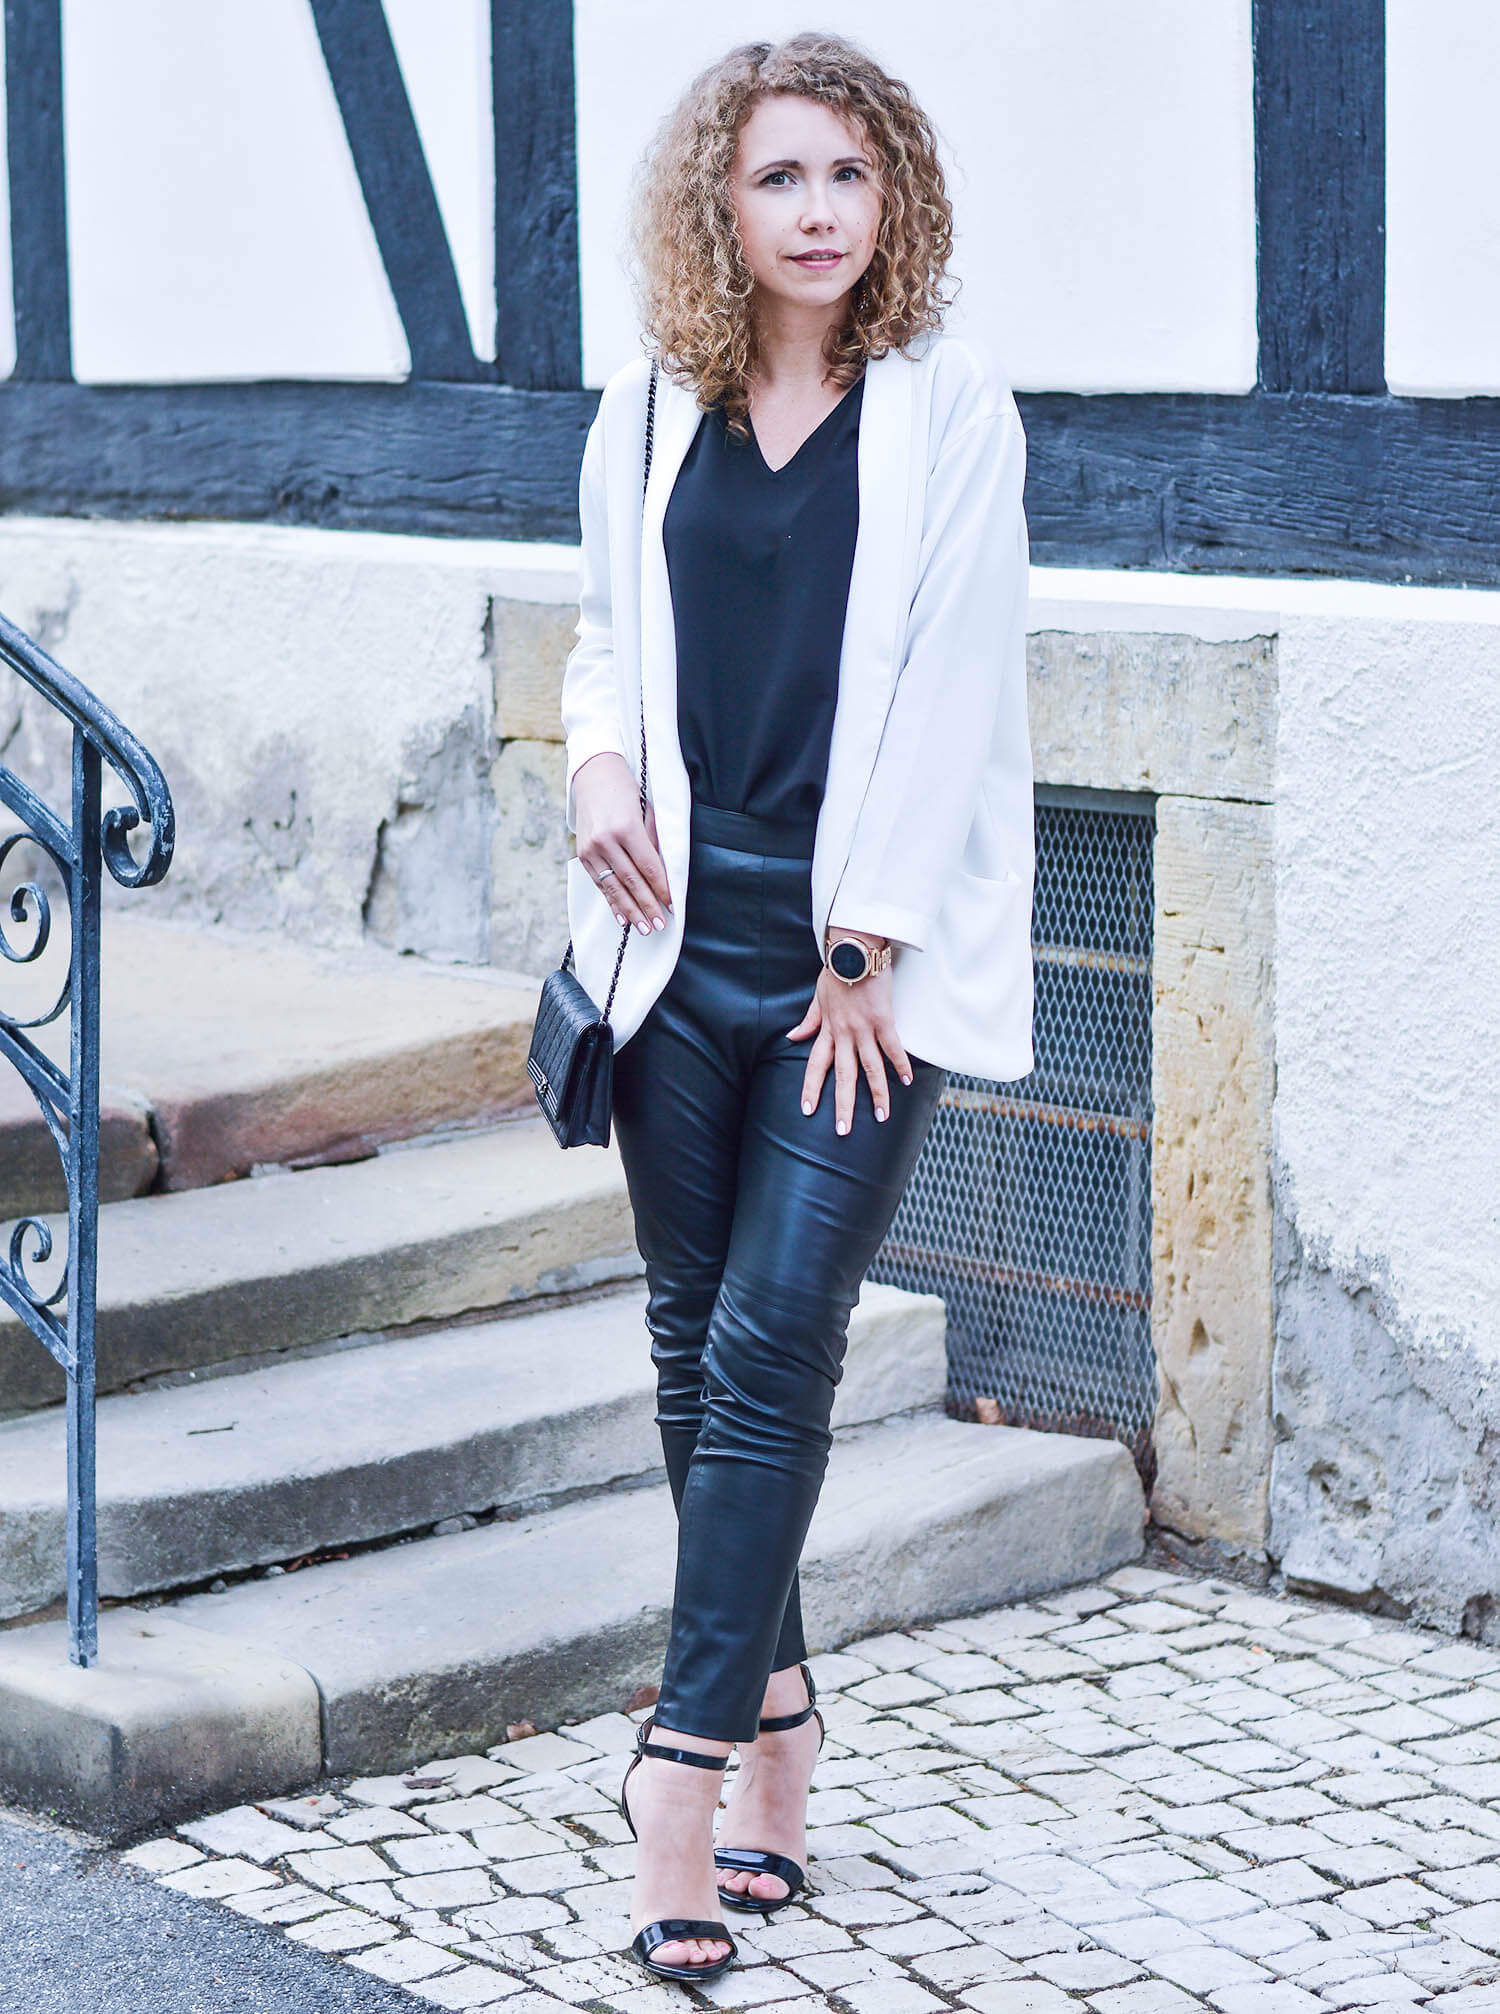 Outfit-Black-Fake-Leather-Pants-White-Blazer-Chanel-Bag-honeymoon-fashionblogger-nrw-kationette-graeflicher-park-bad-driburg